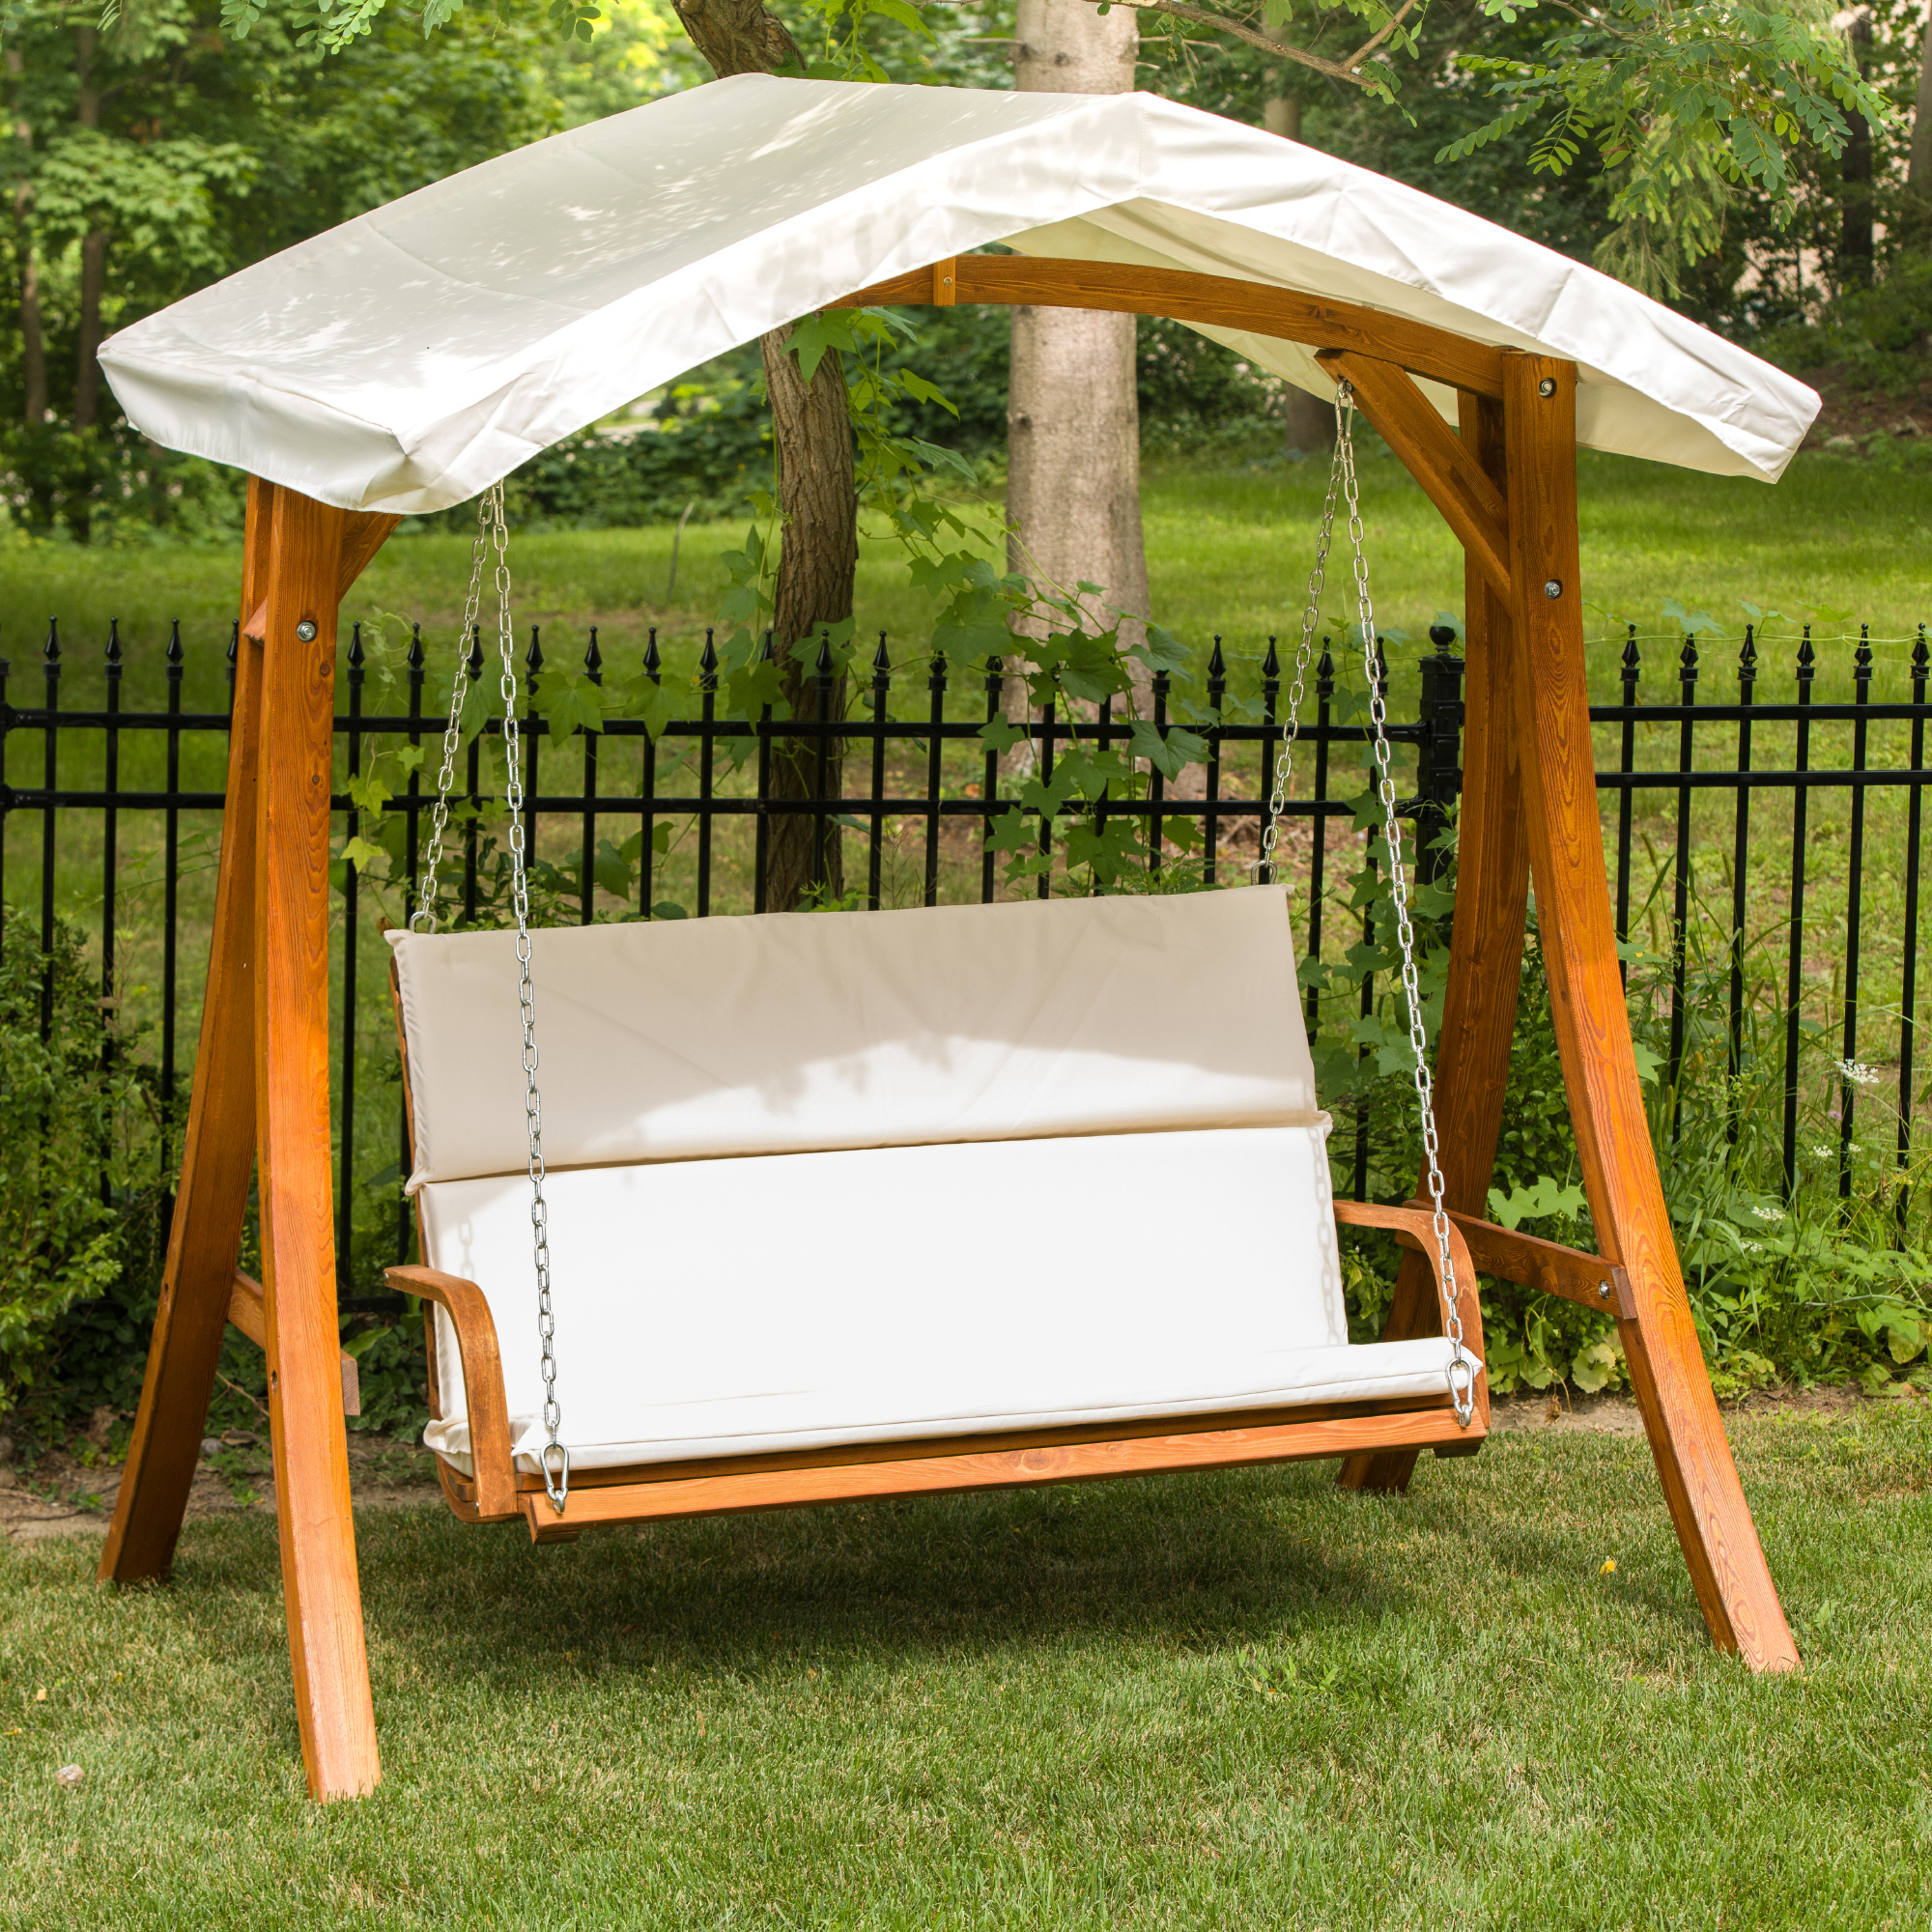 Leisure Season Ltd – Wooden Swing Seater With Canopy Intended For Well Liked 3 Seater Swings With Frame And Canopy (View 22 of 30)